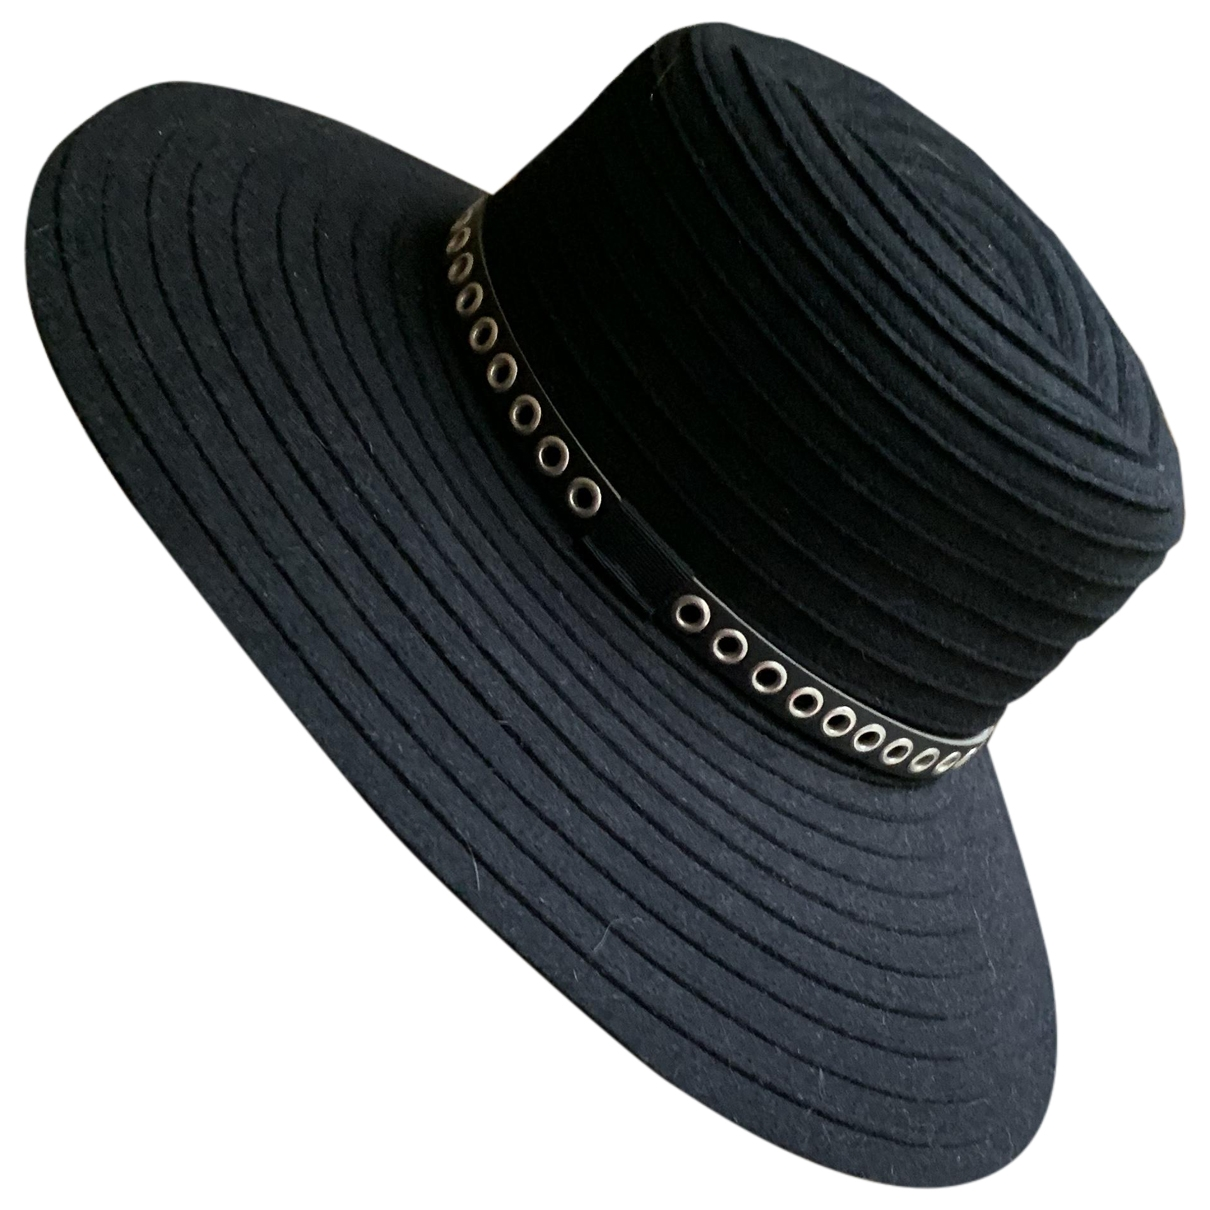 The Kooples Spring Summer 2020 Black hat for Women 55 cm